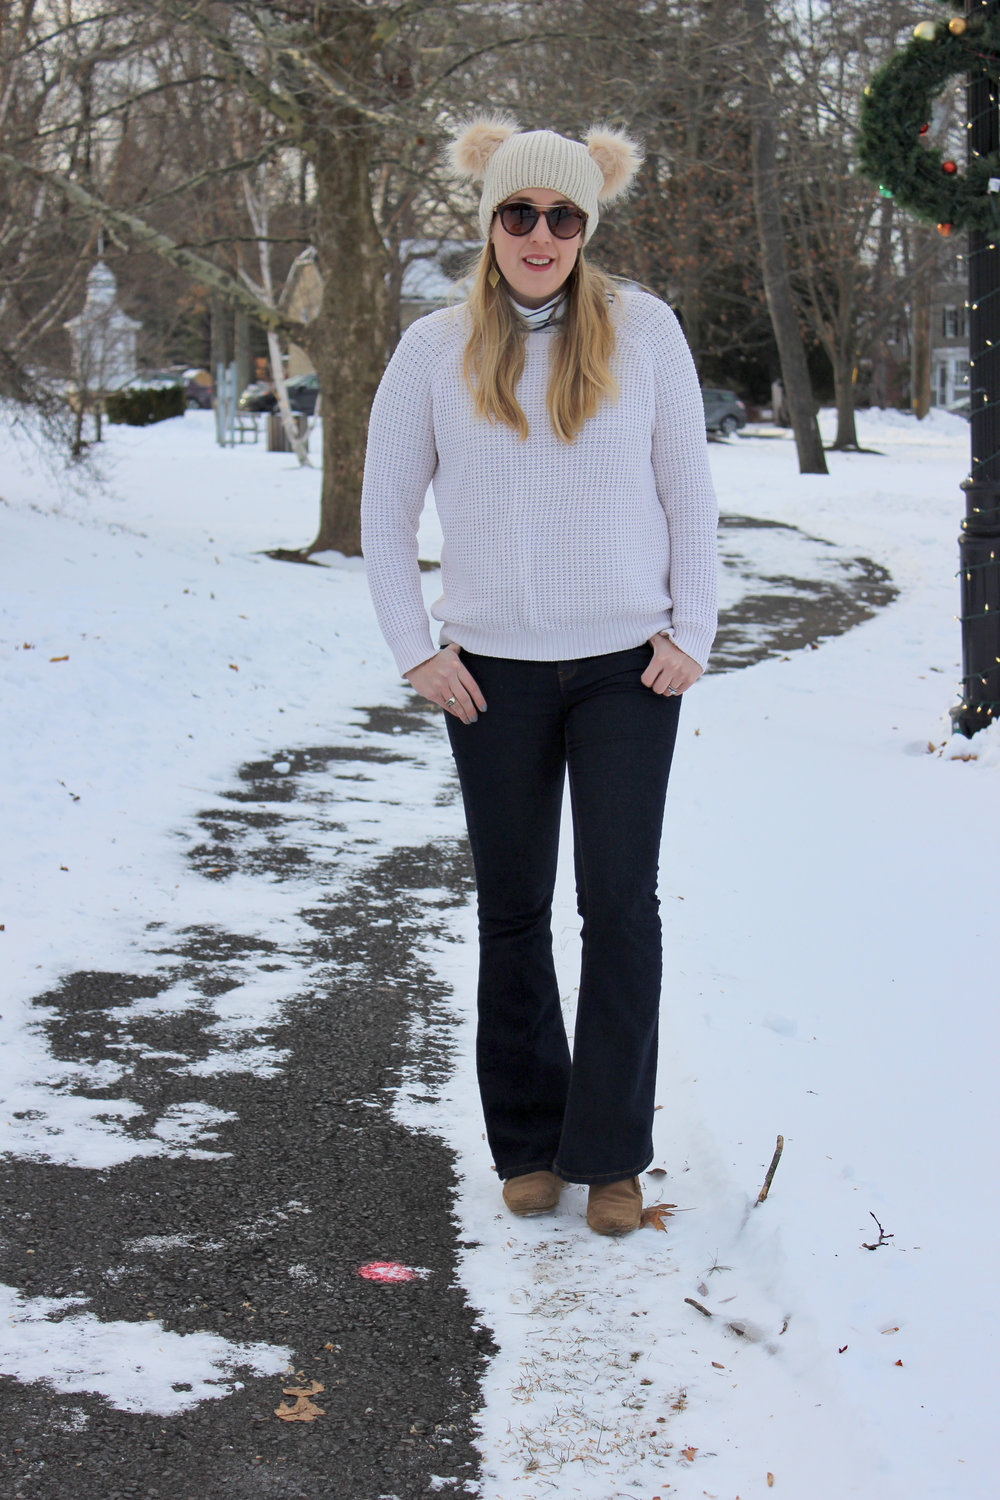 Eighties Inspired Winter Style - wear she blossoms